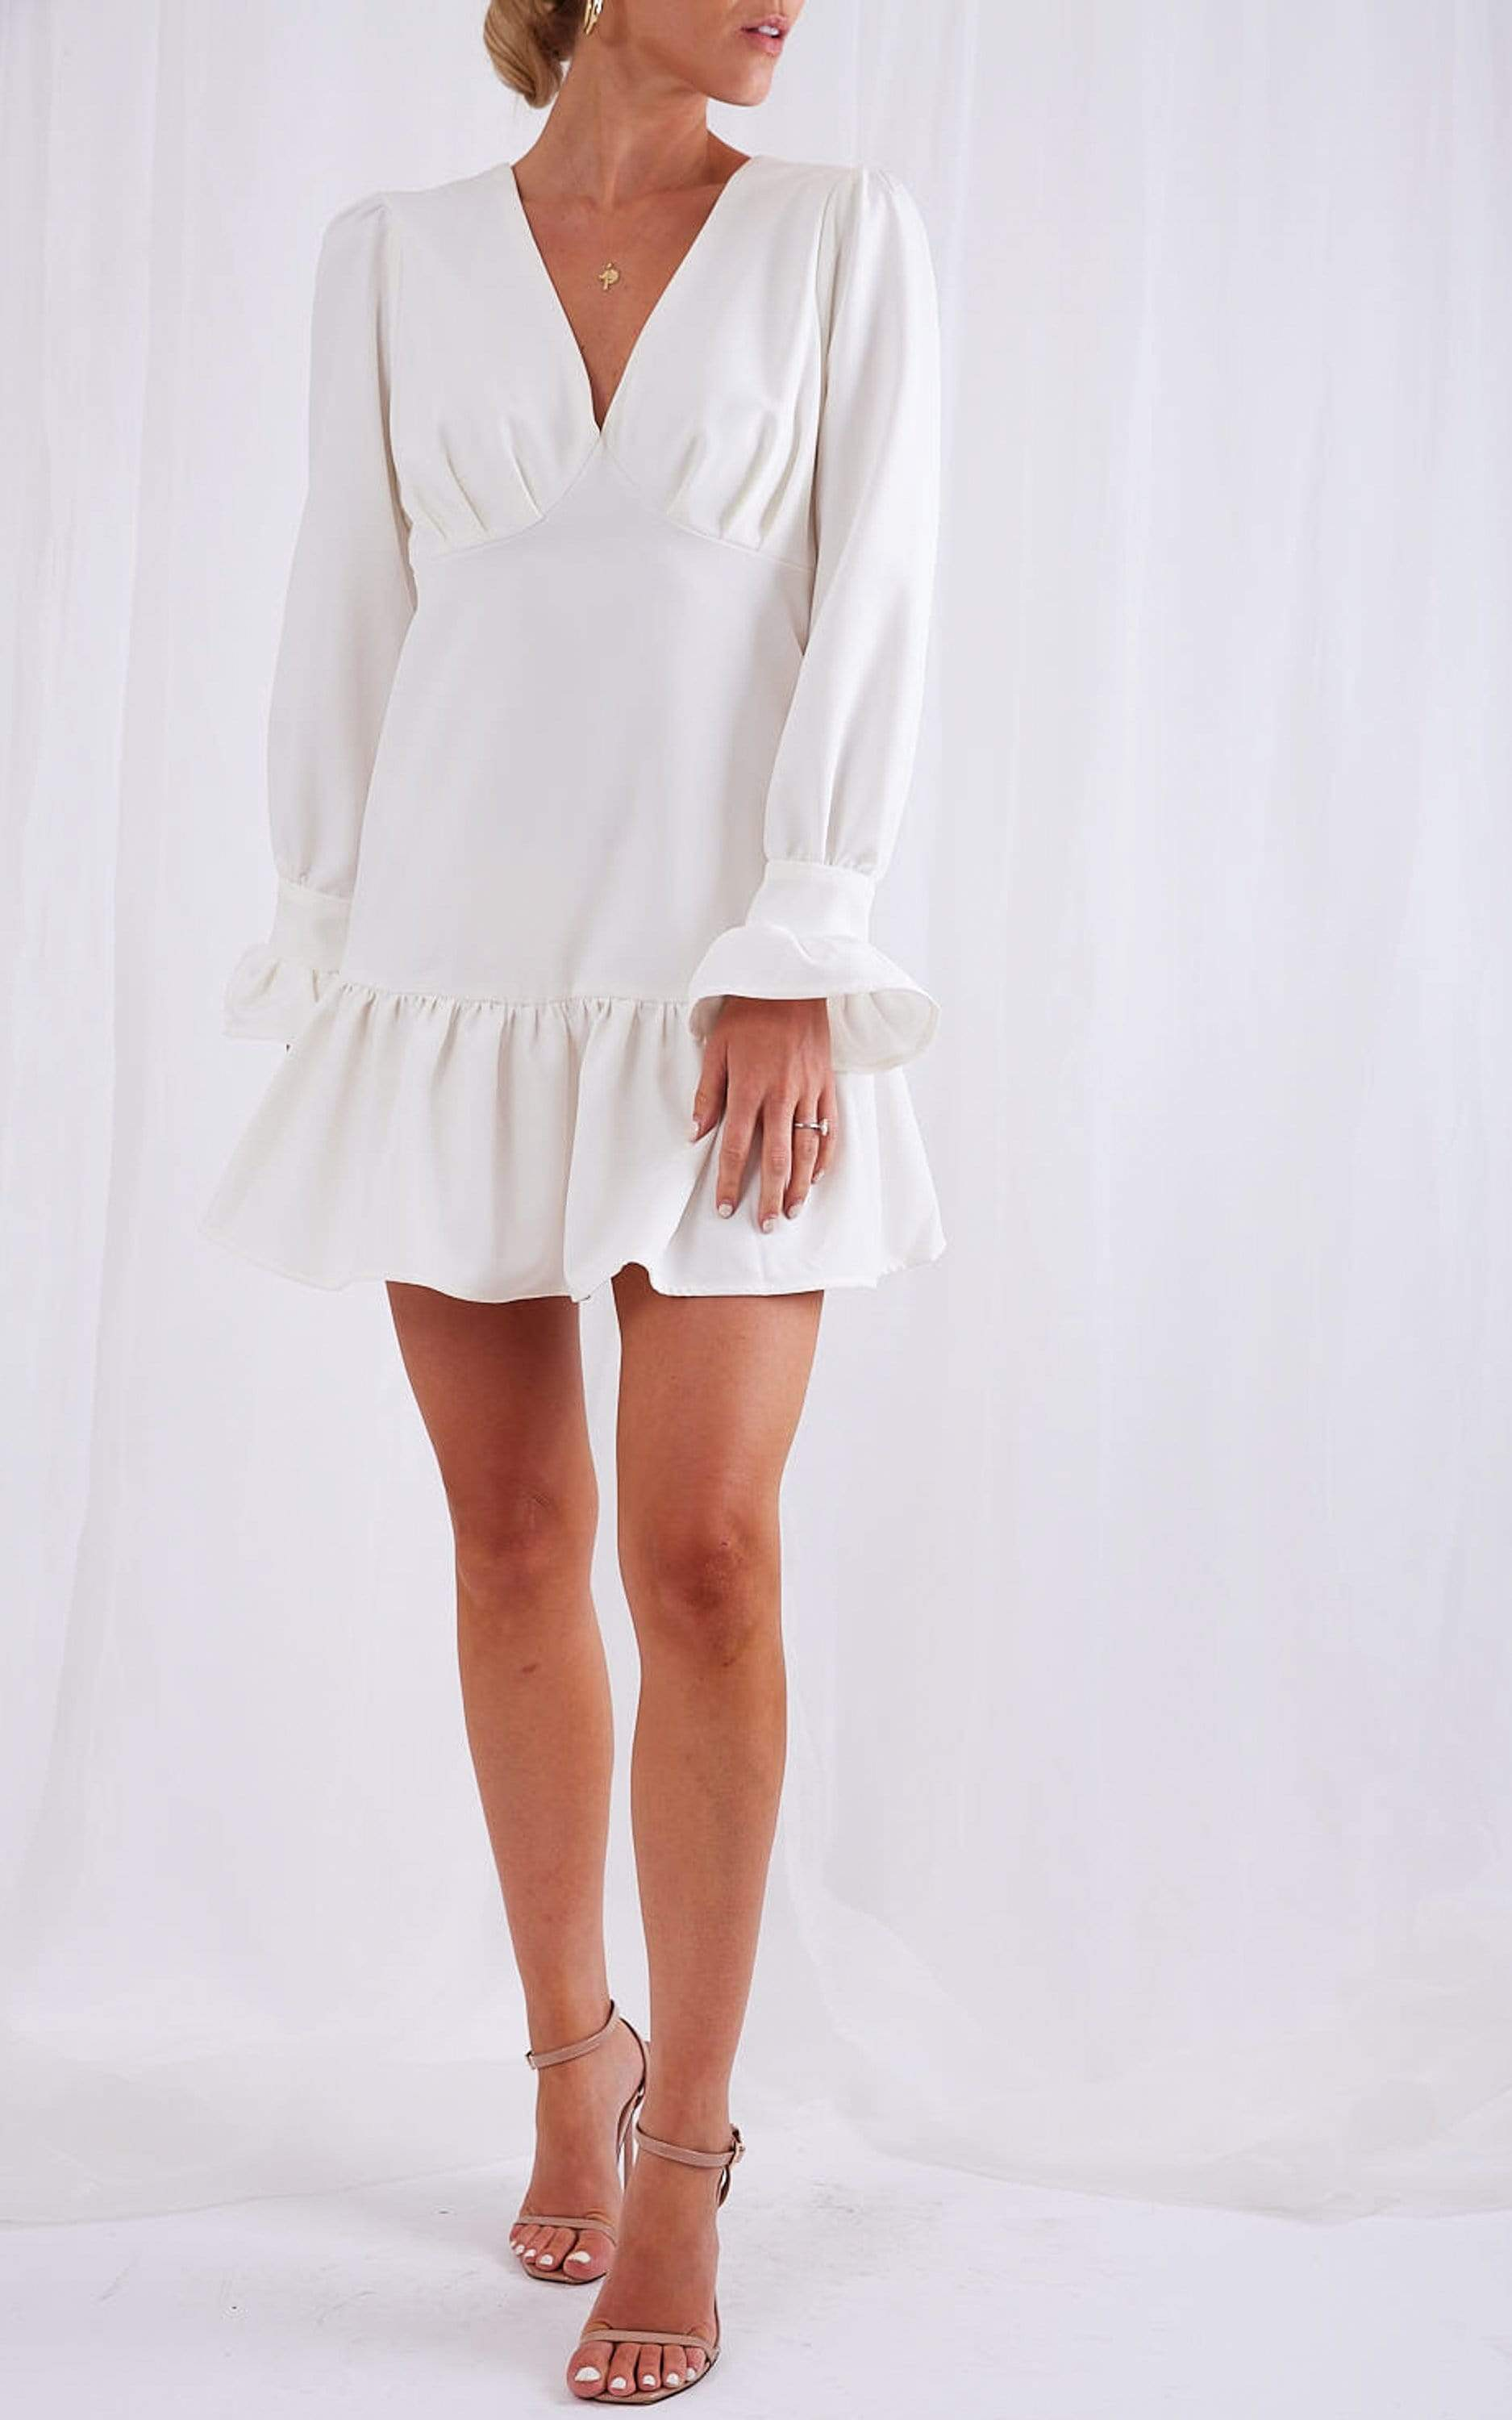 Pastelle Mini Dress - White, Dress - Pretty Lavish